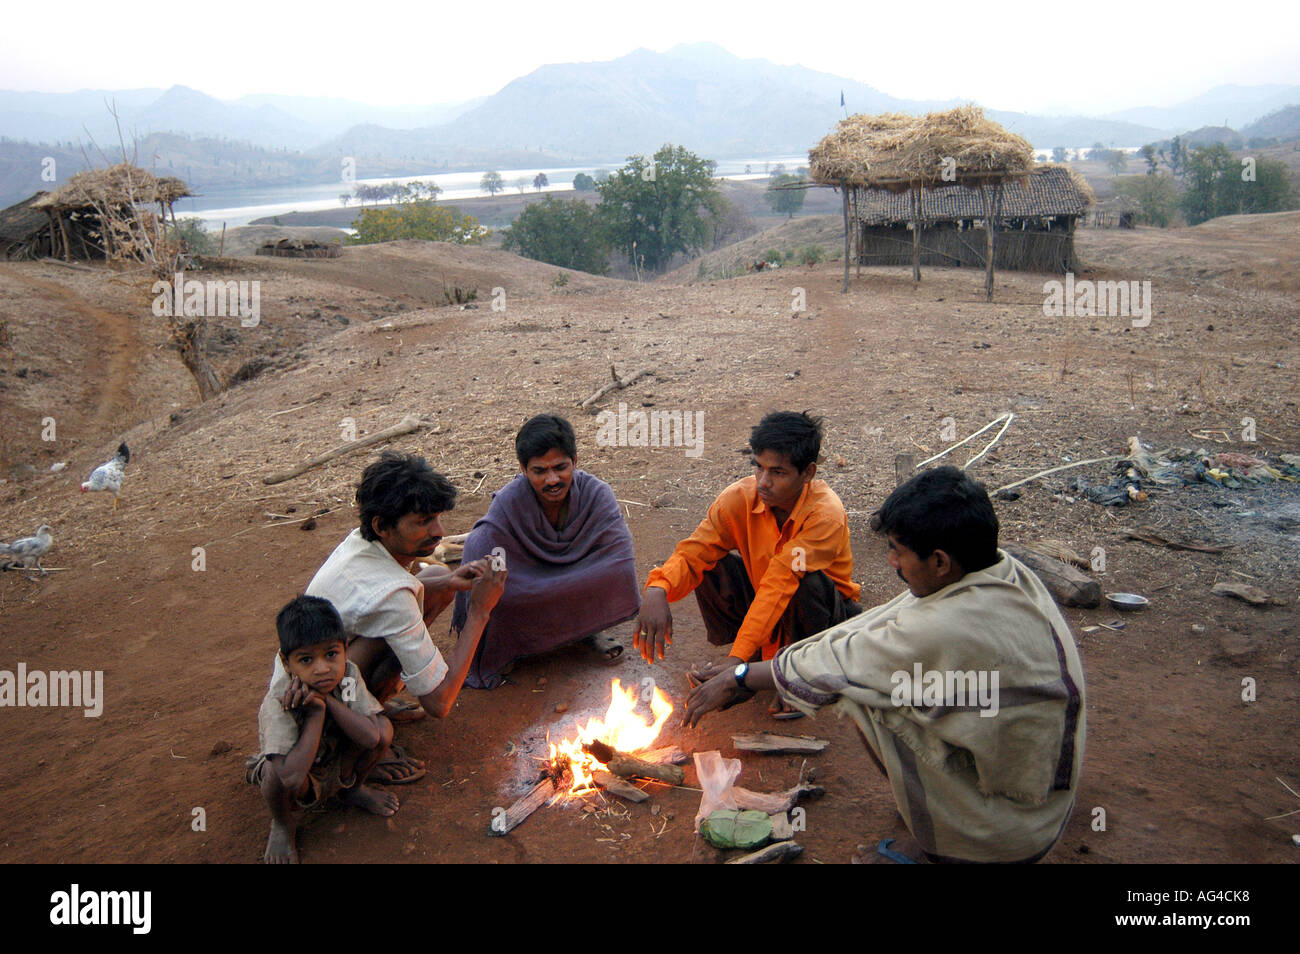 Asb79442 Indian Village People Warming Hands In Winter At